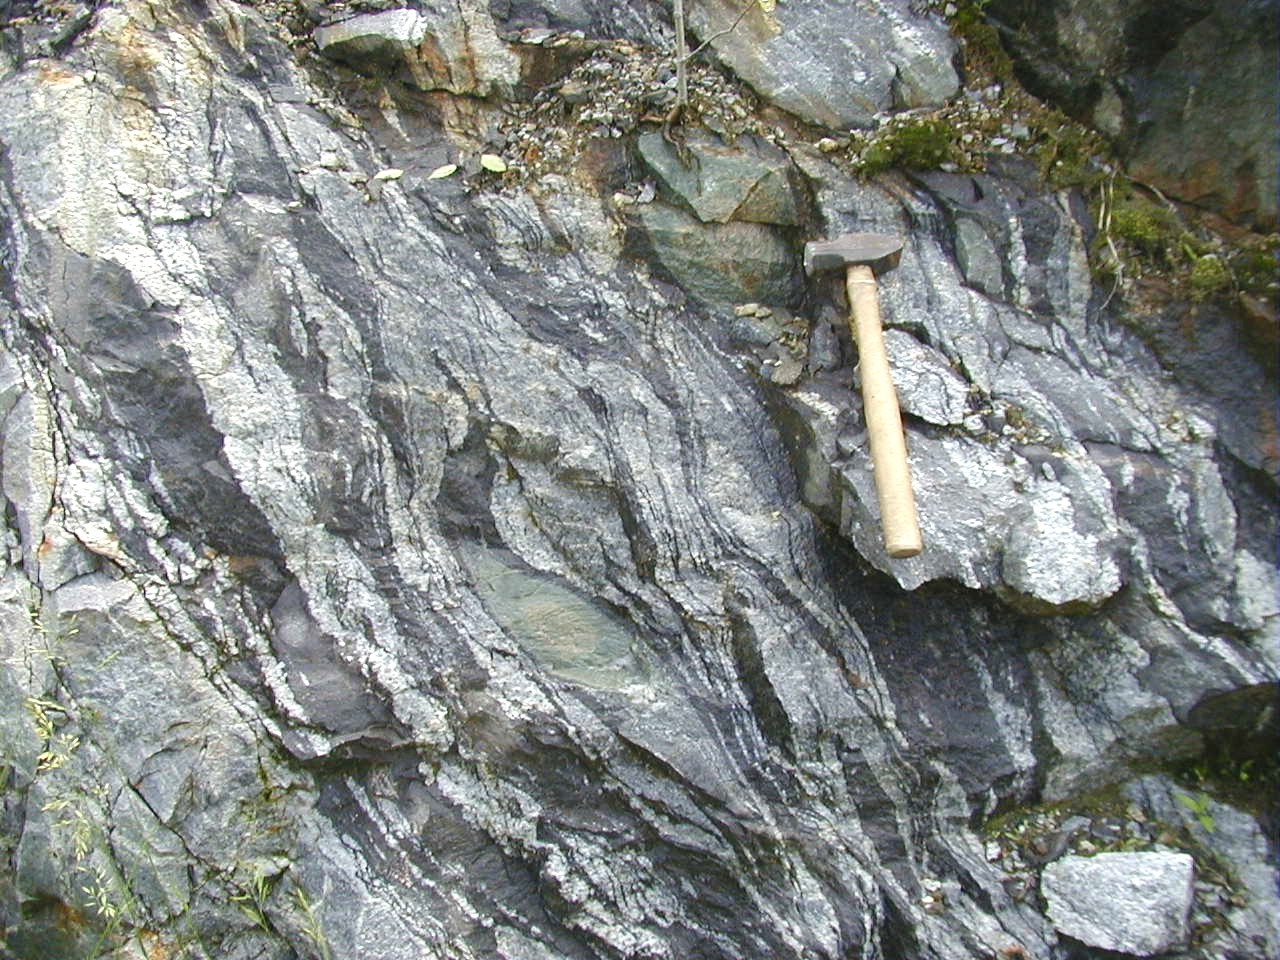 a close-up of gneiss